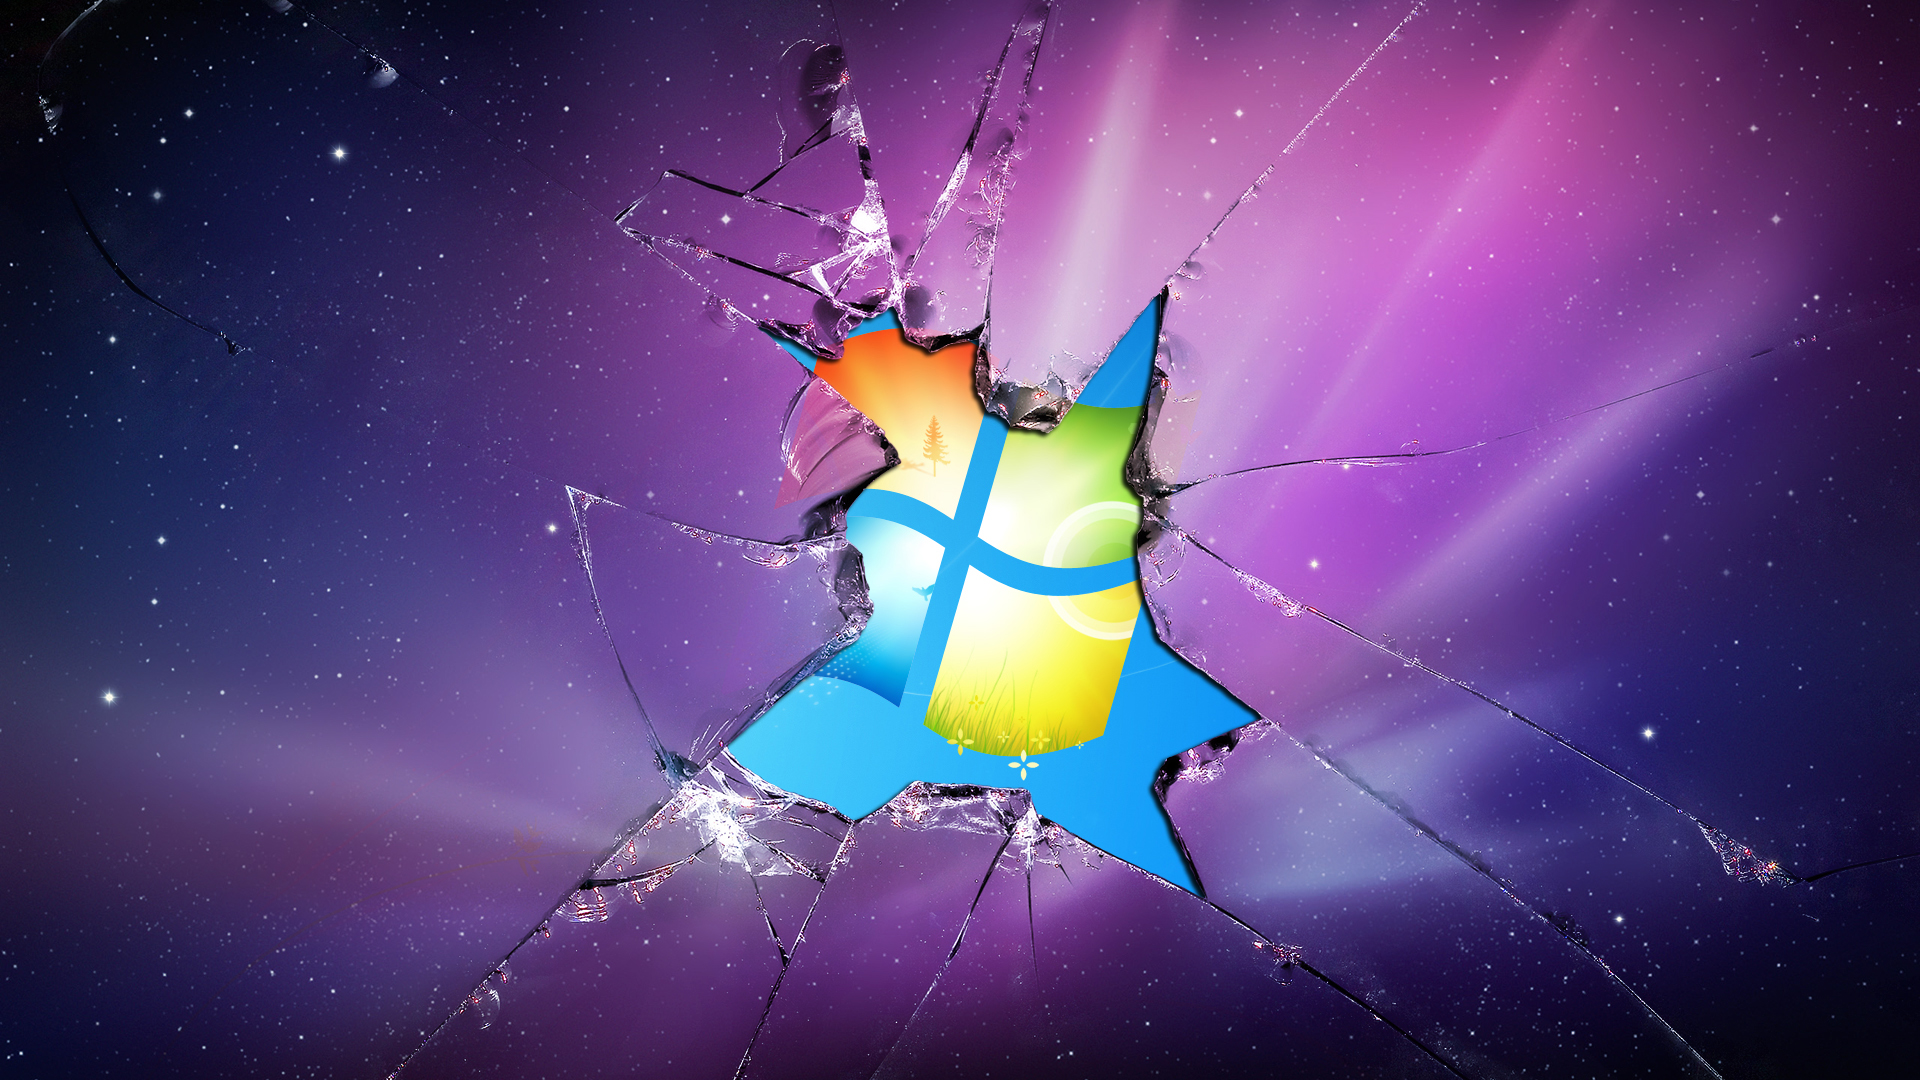 windows 7 cracked screen wallpaper - wallpapersafari